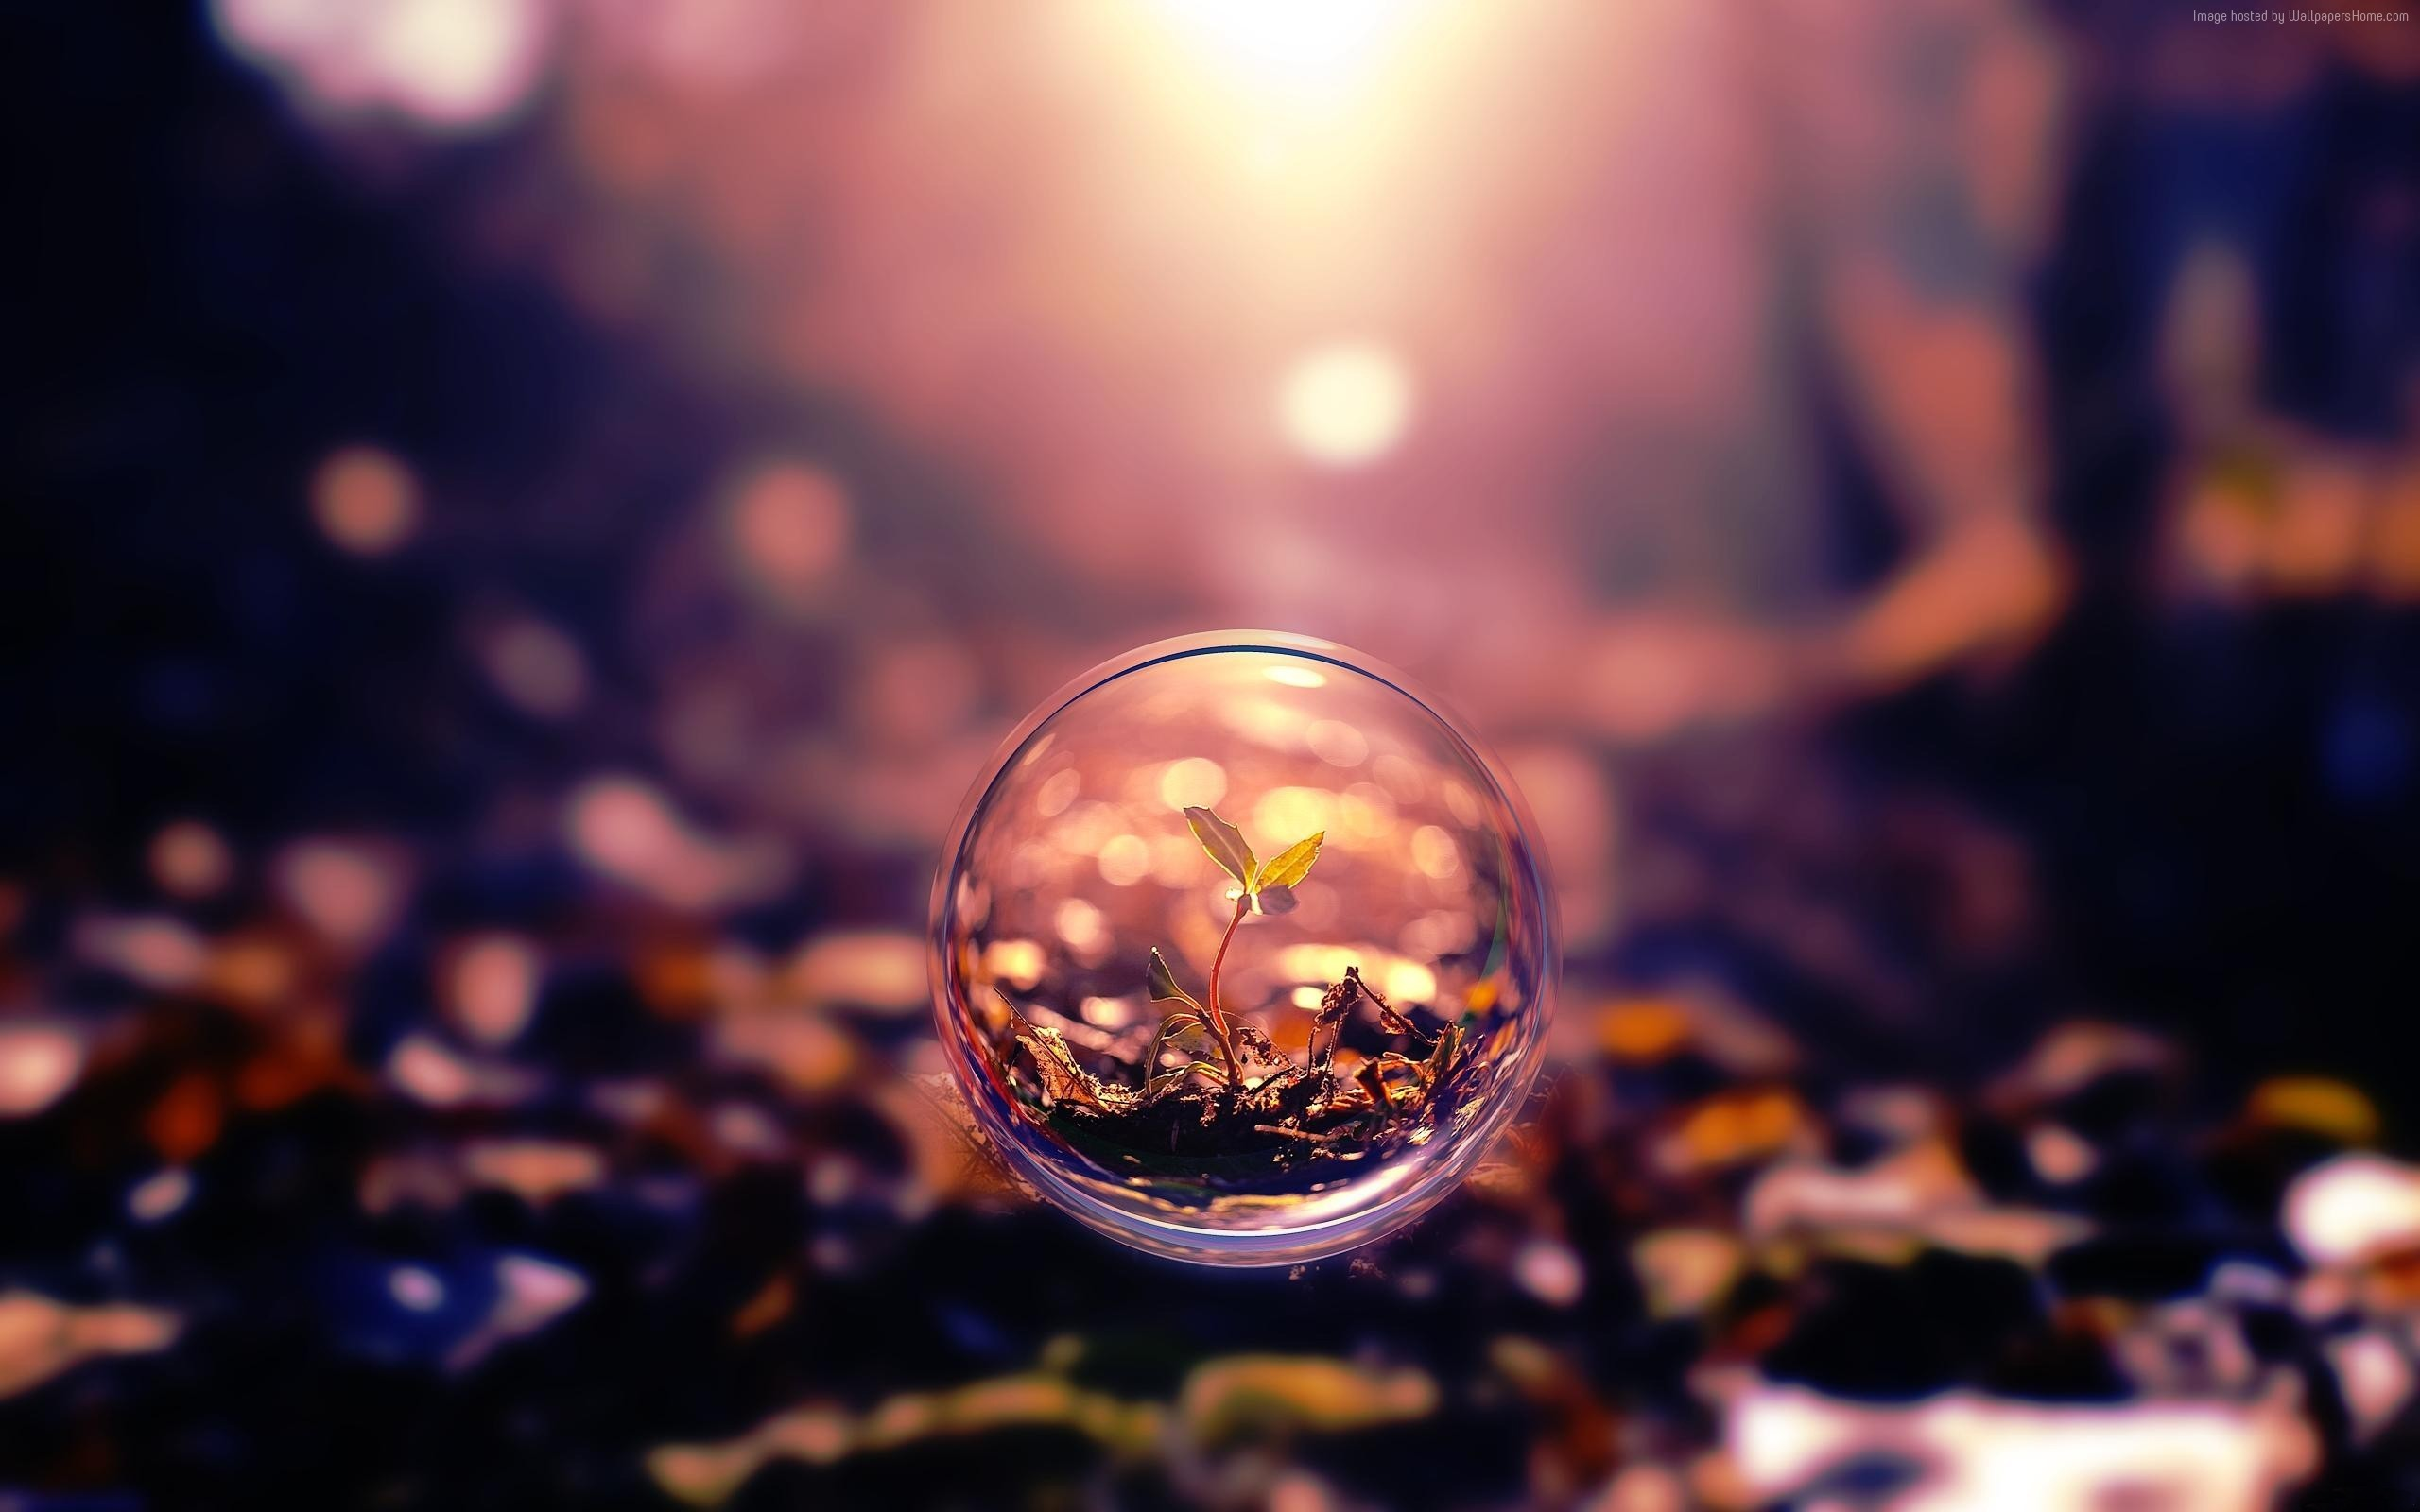 Wallpaper sphere, 4k, HD wallpaper, background, sunset, transparent, plant,  OS #245. Bring some HD wallpapers into your life with WallpapersHome!